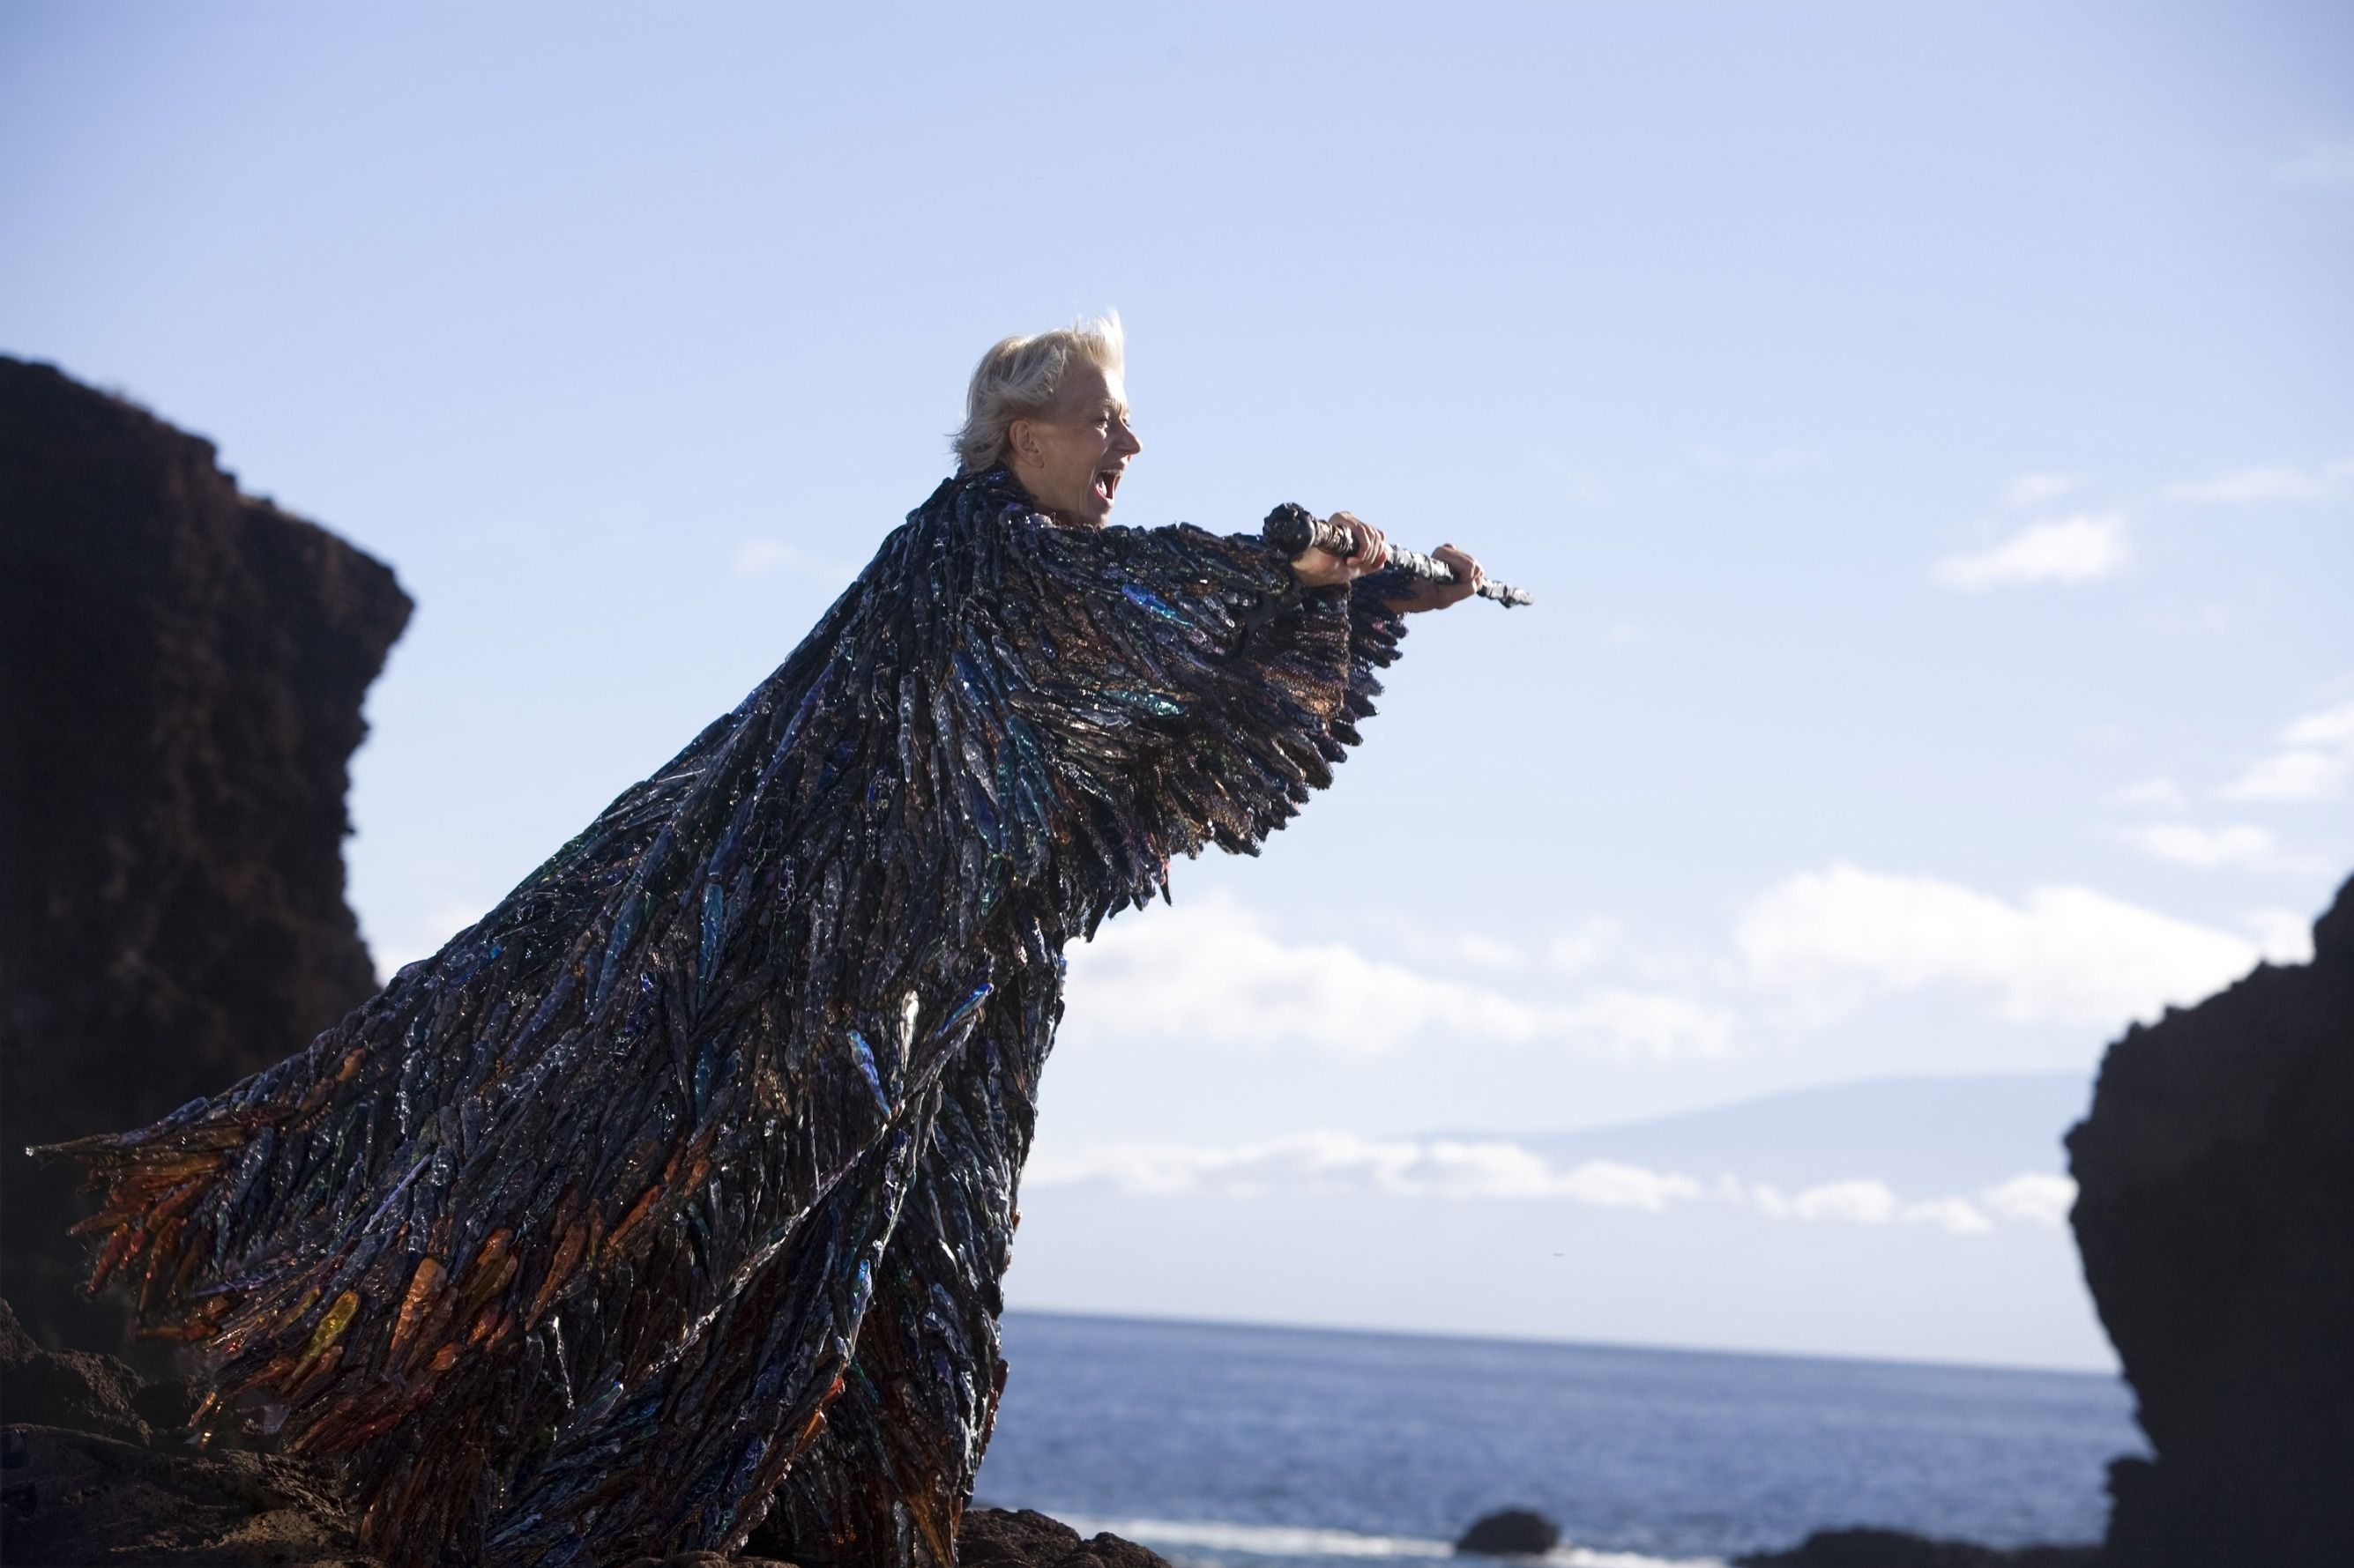 Helen Mirren as Prospera in The Tempest (2010). Prospera the sorceress is standing on a cliff in front of the ocean under a blue sky. She has short white hair and is wearing an enormous cloak which trails to the floor, make up of hundres of pieces of a shiny material in an array of dark colours. She is holding a staff horizontally in front of her, mouth open in a shout.